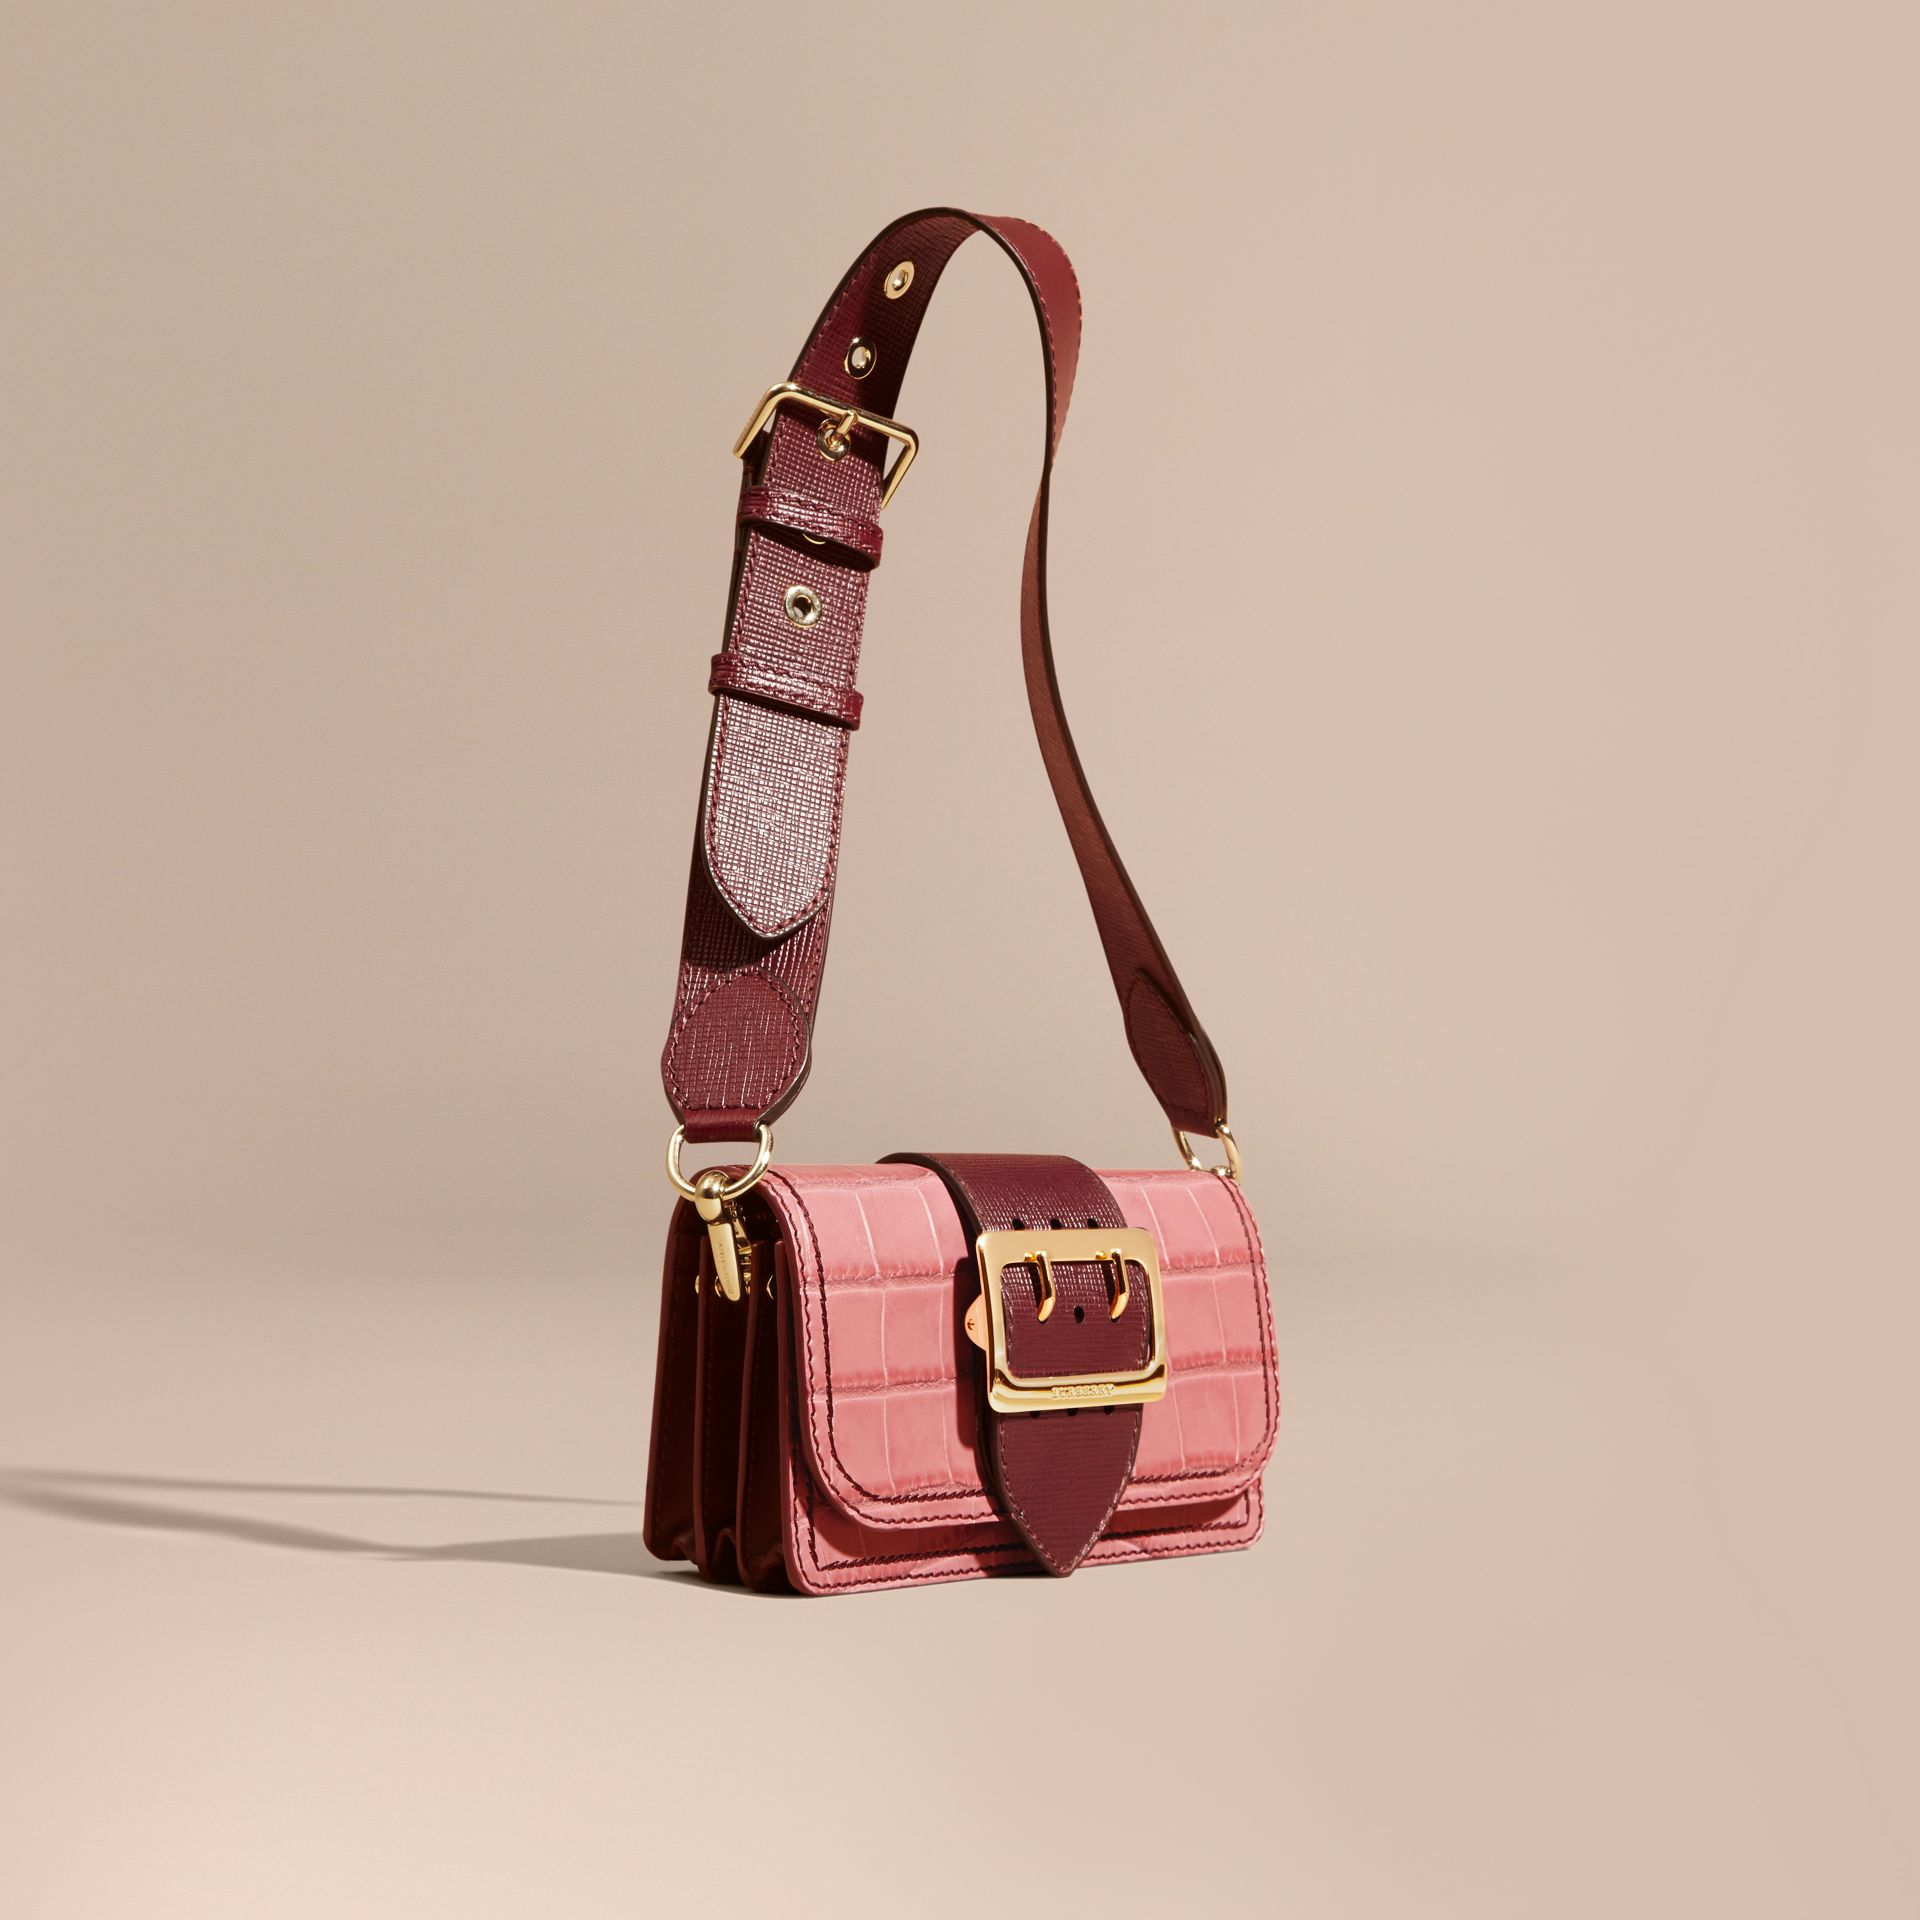 Dusky pink/ burgundy The Small Buckle Bag in Alligator and Leather Dusky Pink/ Burgundy - gallery image 1